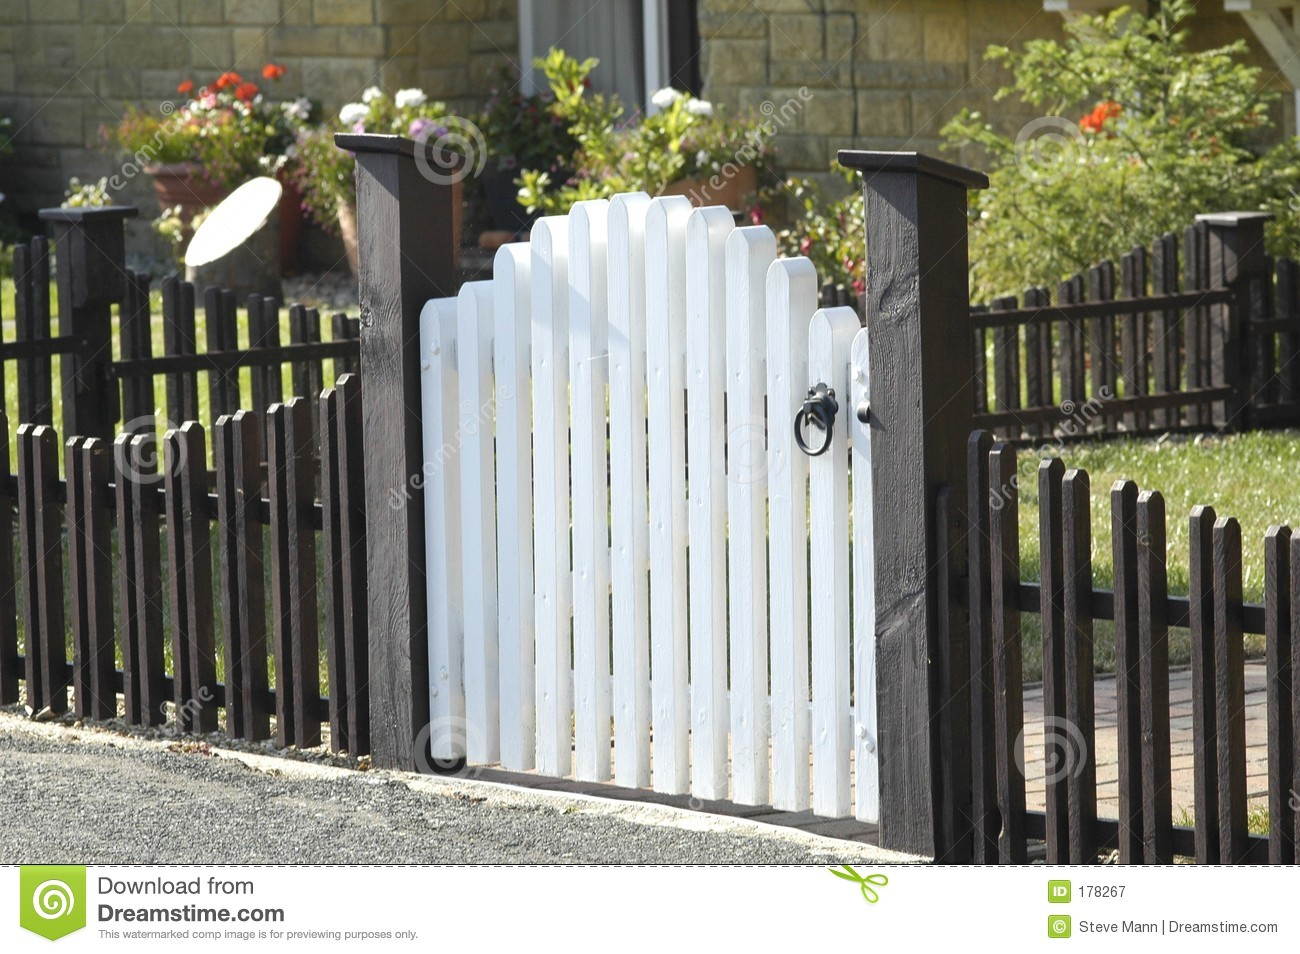 picket fence and gate stock image image of gates hobbies. Black Bedroom Furniture Sets. Home Design Ideas